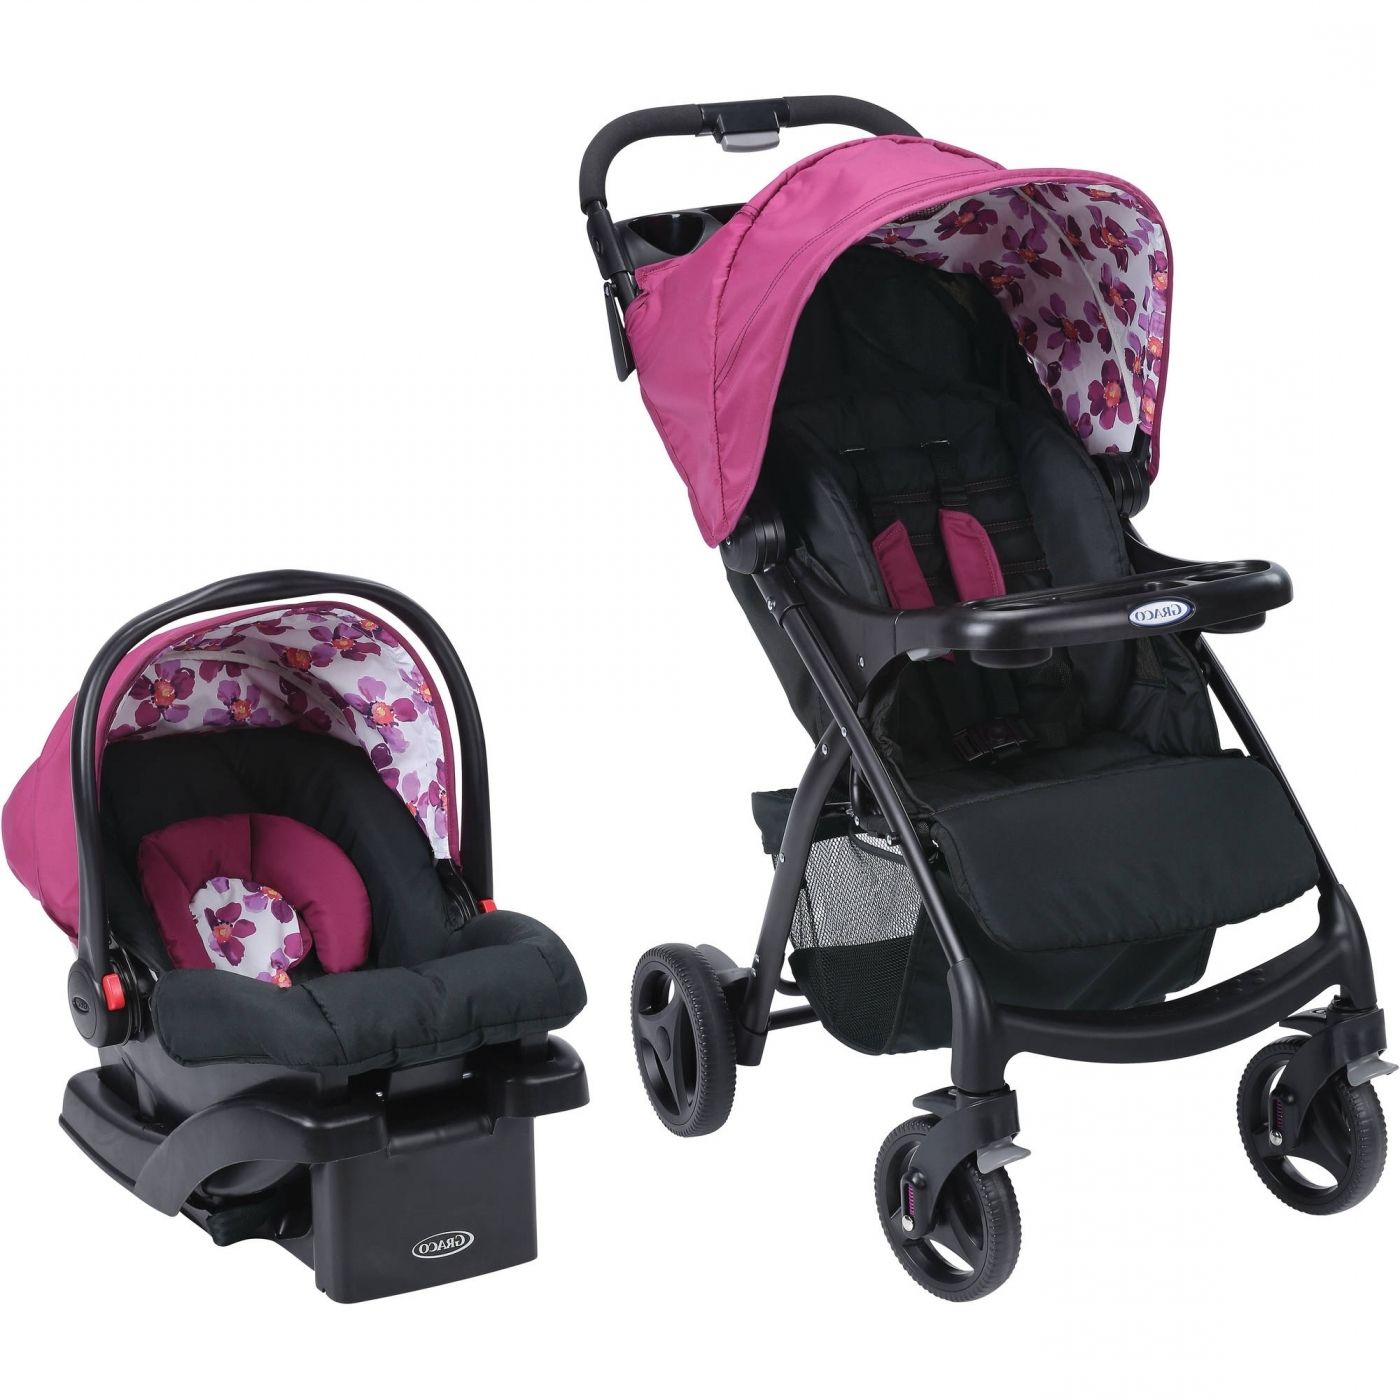 Pin by Jane Crider on Ari Has Baby strollers, Baby car